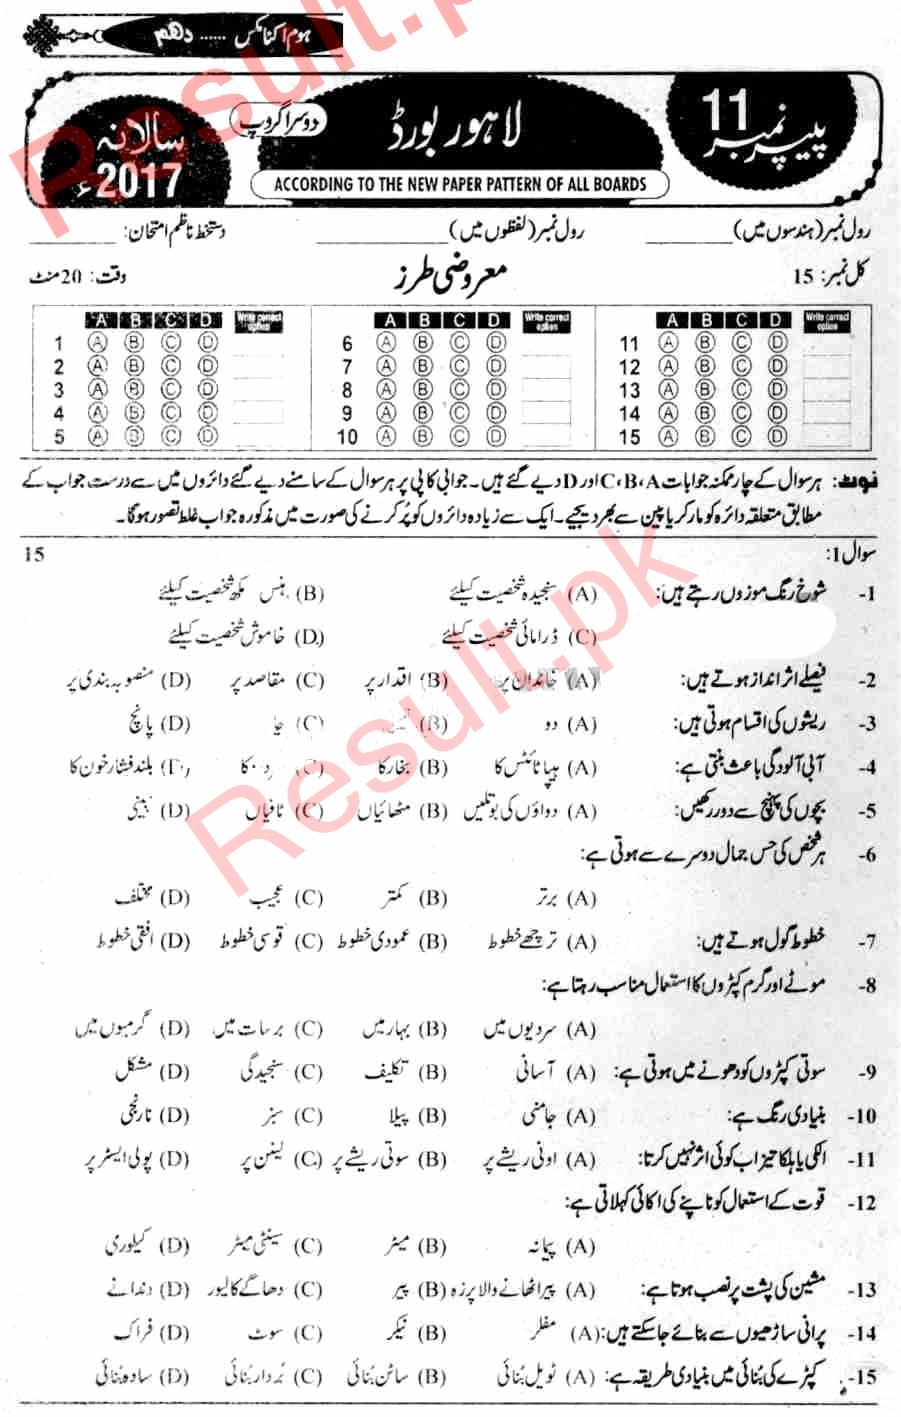 BISE Lahore Board Past Papers 2019 Matric, SSC Part 1 & 2